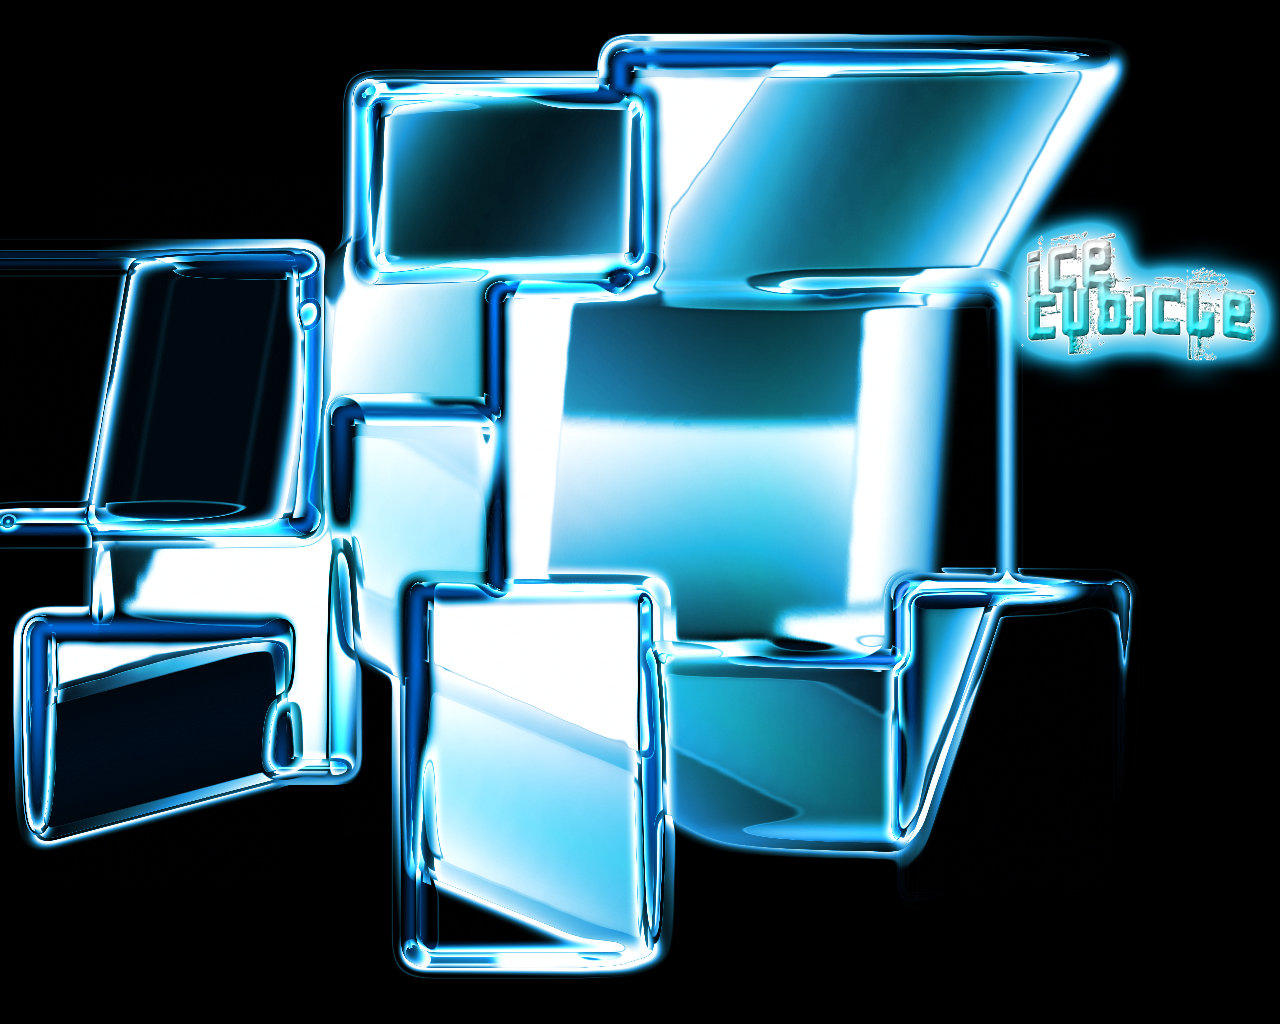 Ice Cubicle by Cpt1Jack 1280x1024